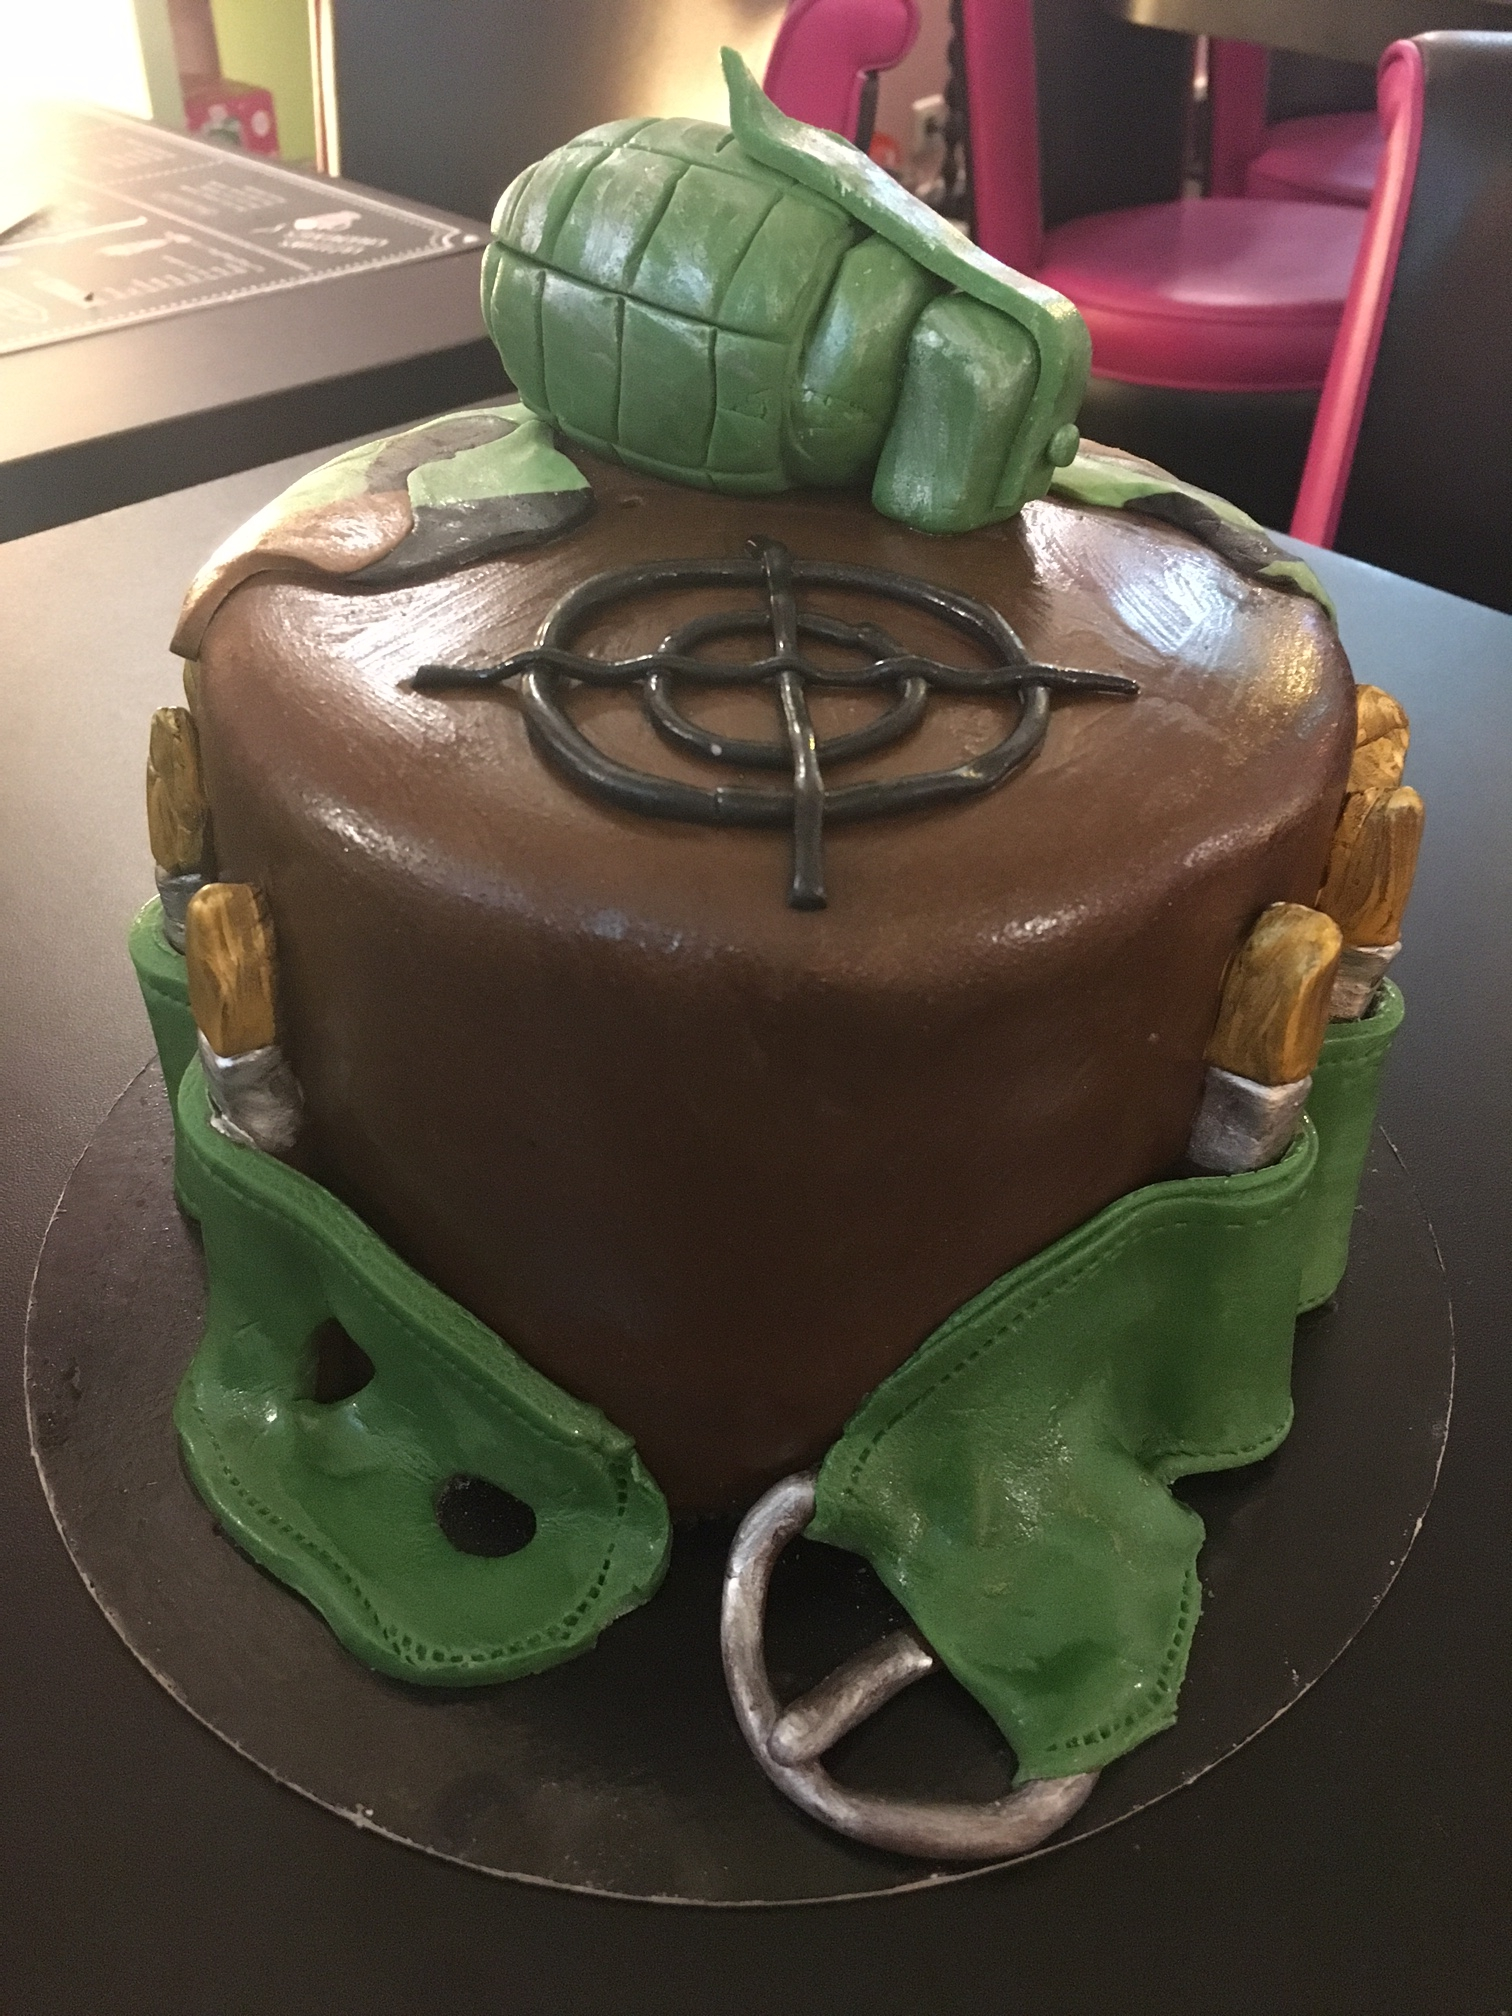 gateau_3d_COD_call_of_duty